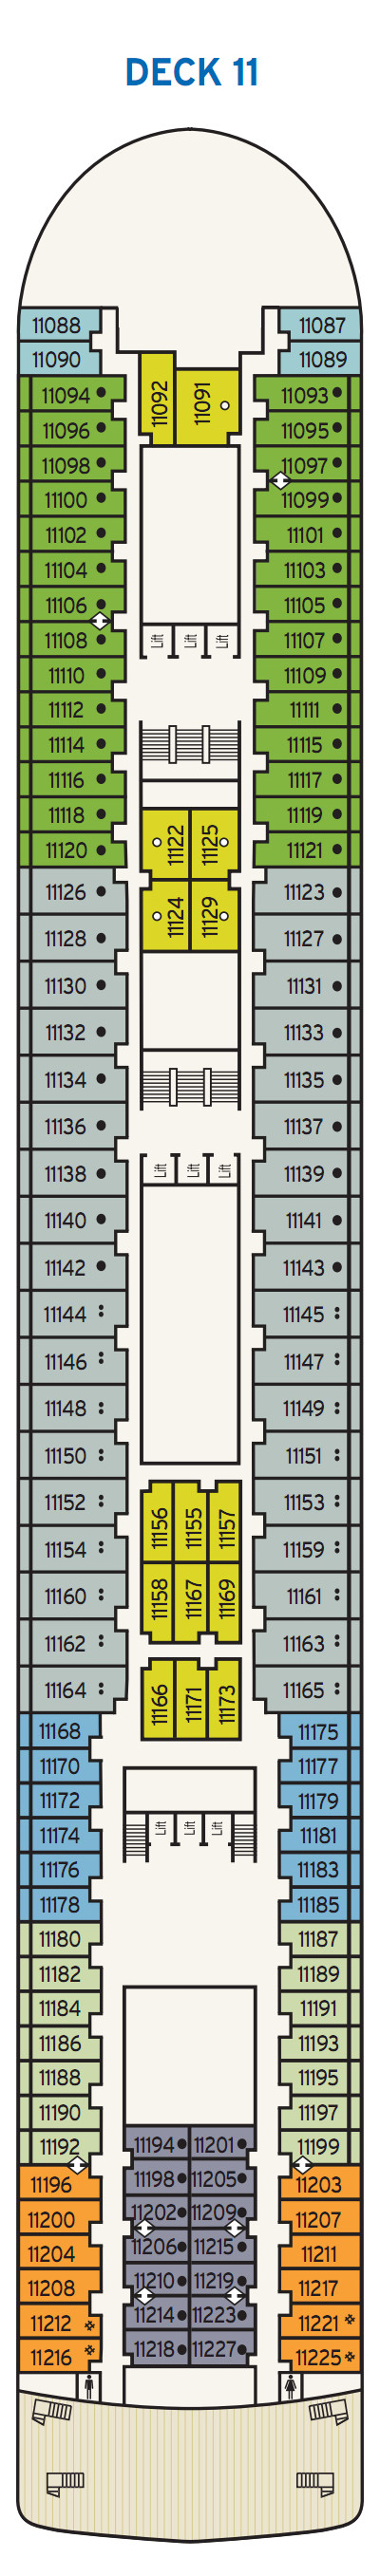 P&O - Pacific Jewel Deck 11 layout